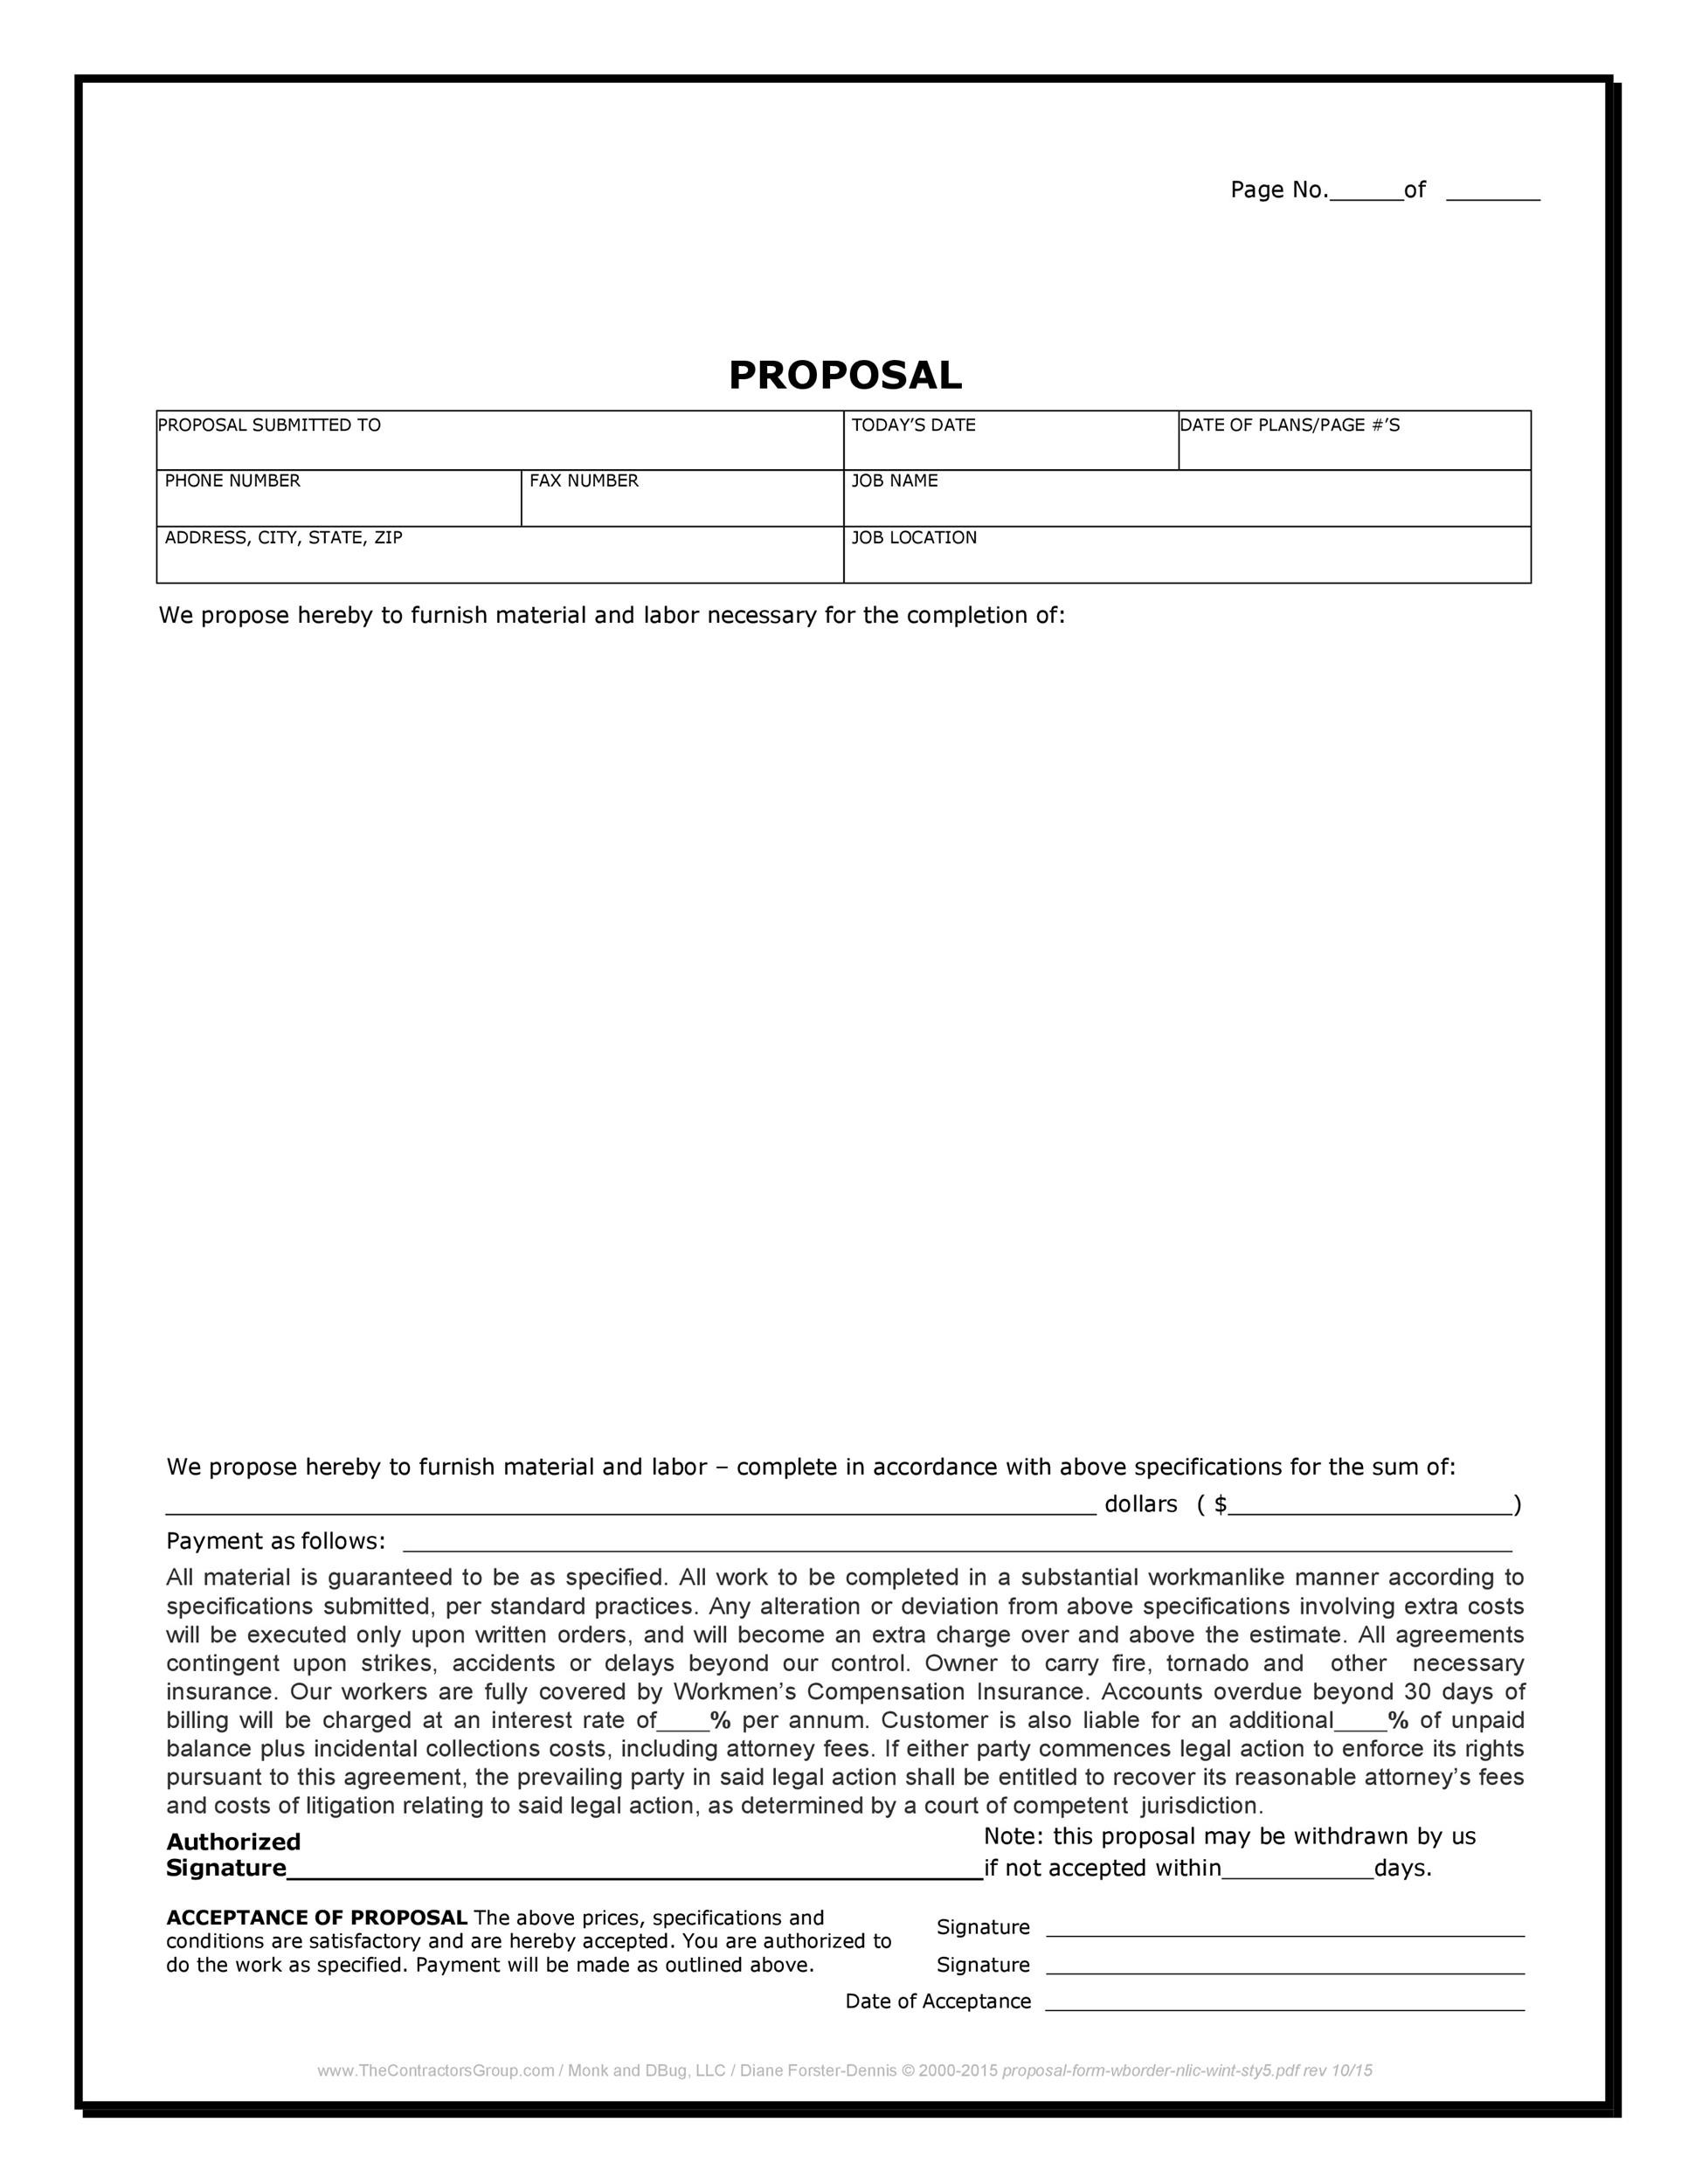 Construction Proposal Examples  Construction Proposal Template